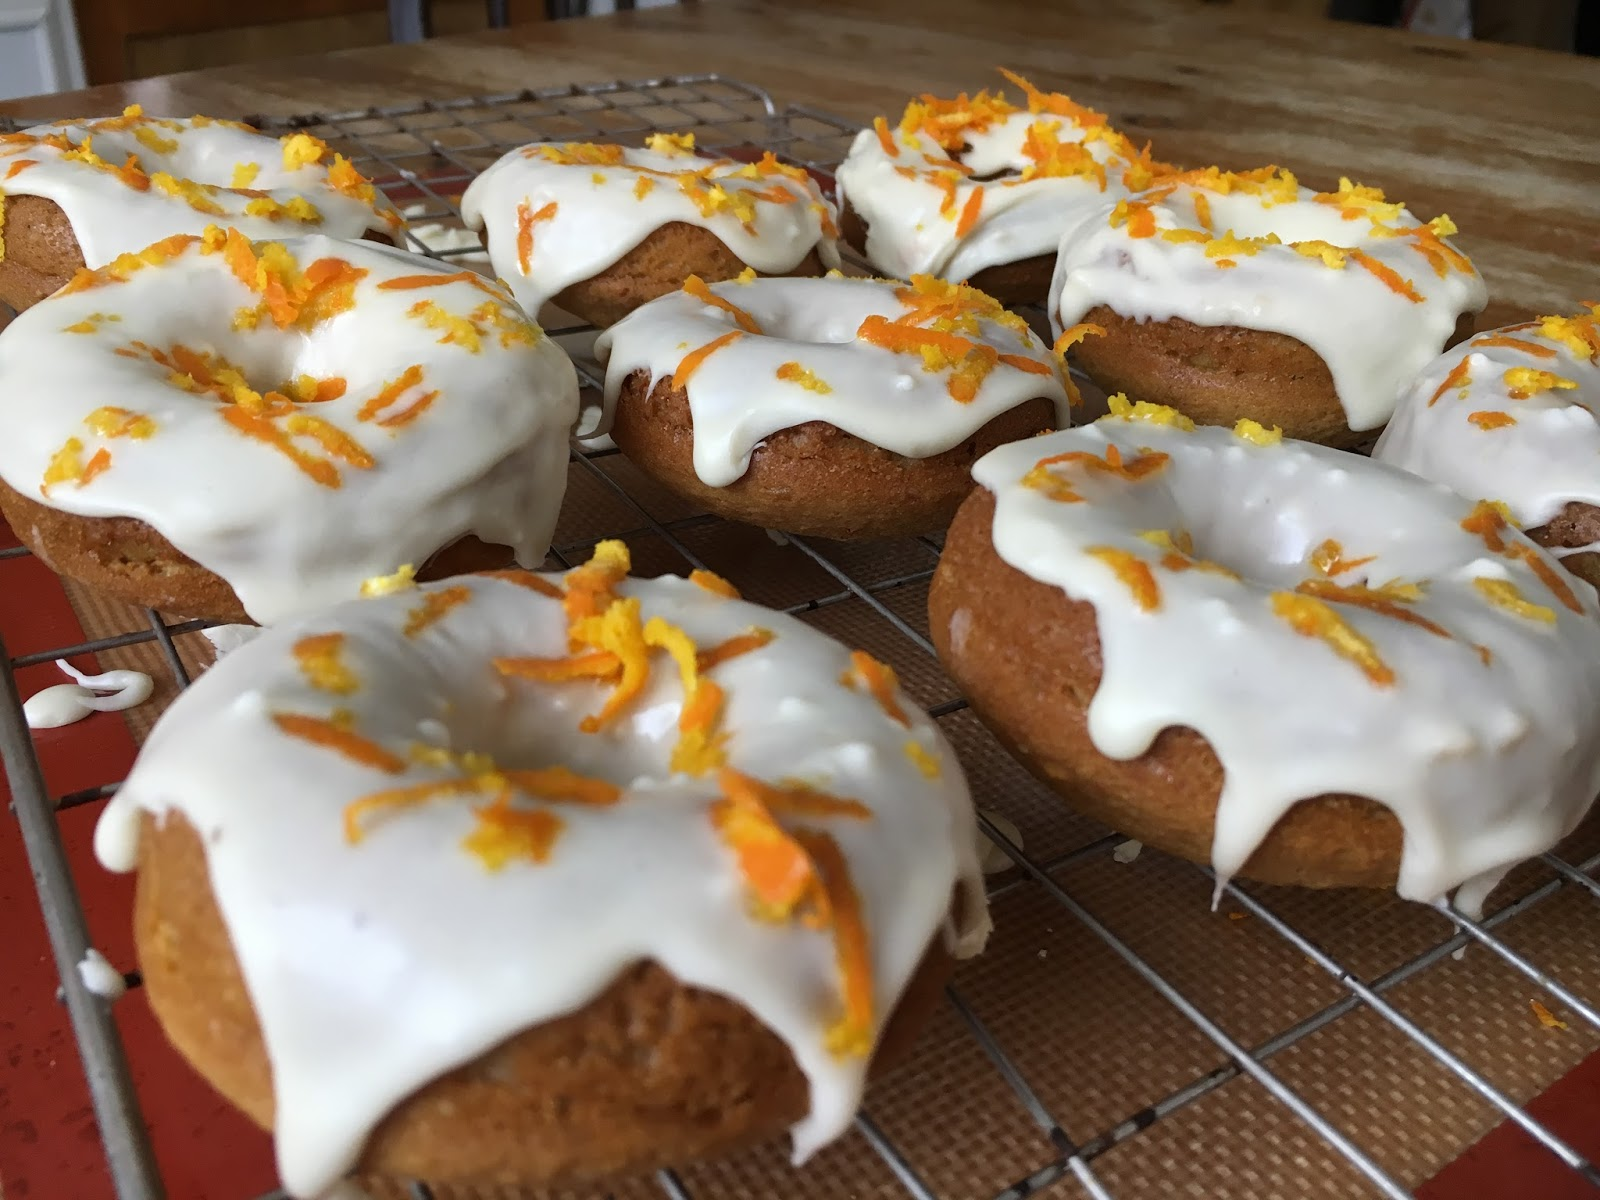 Vegan Orange and White Chocolate Donuts